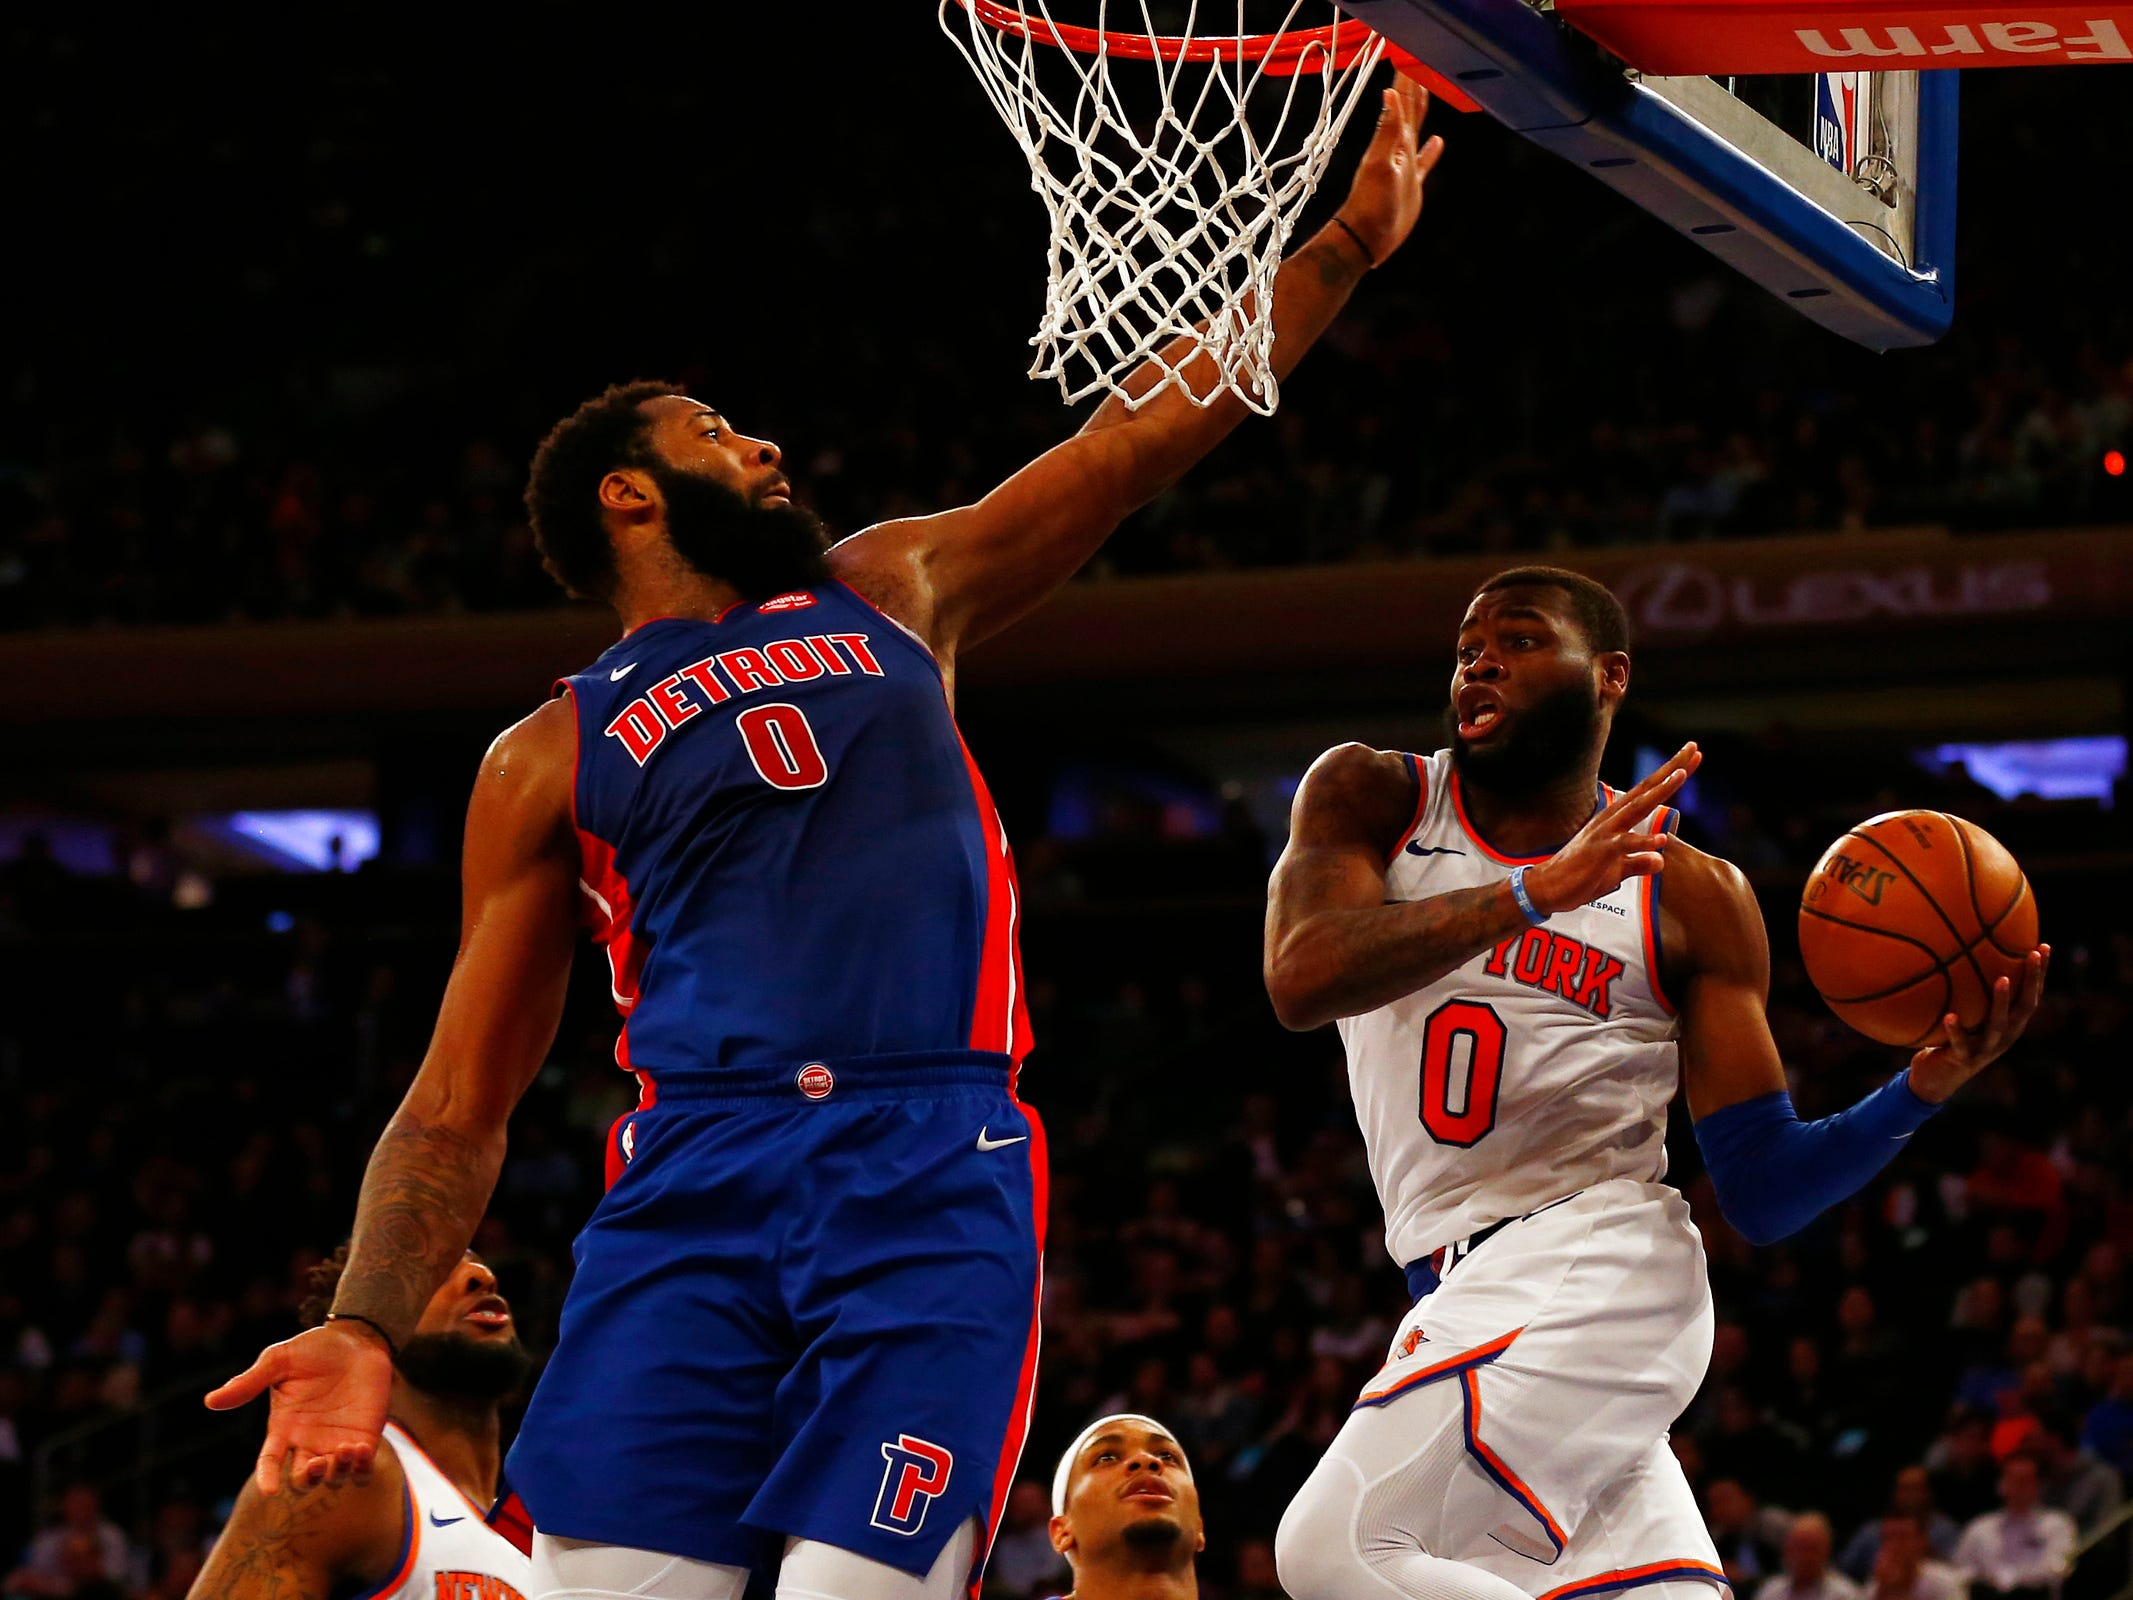 New York Knicks guard Kadeem Allen (0) looks to pass around Detroit Pistons center Andre Drummond (0) during the second half at Madison Square Garden on Wednesday, April 10, 2019.